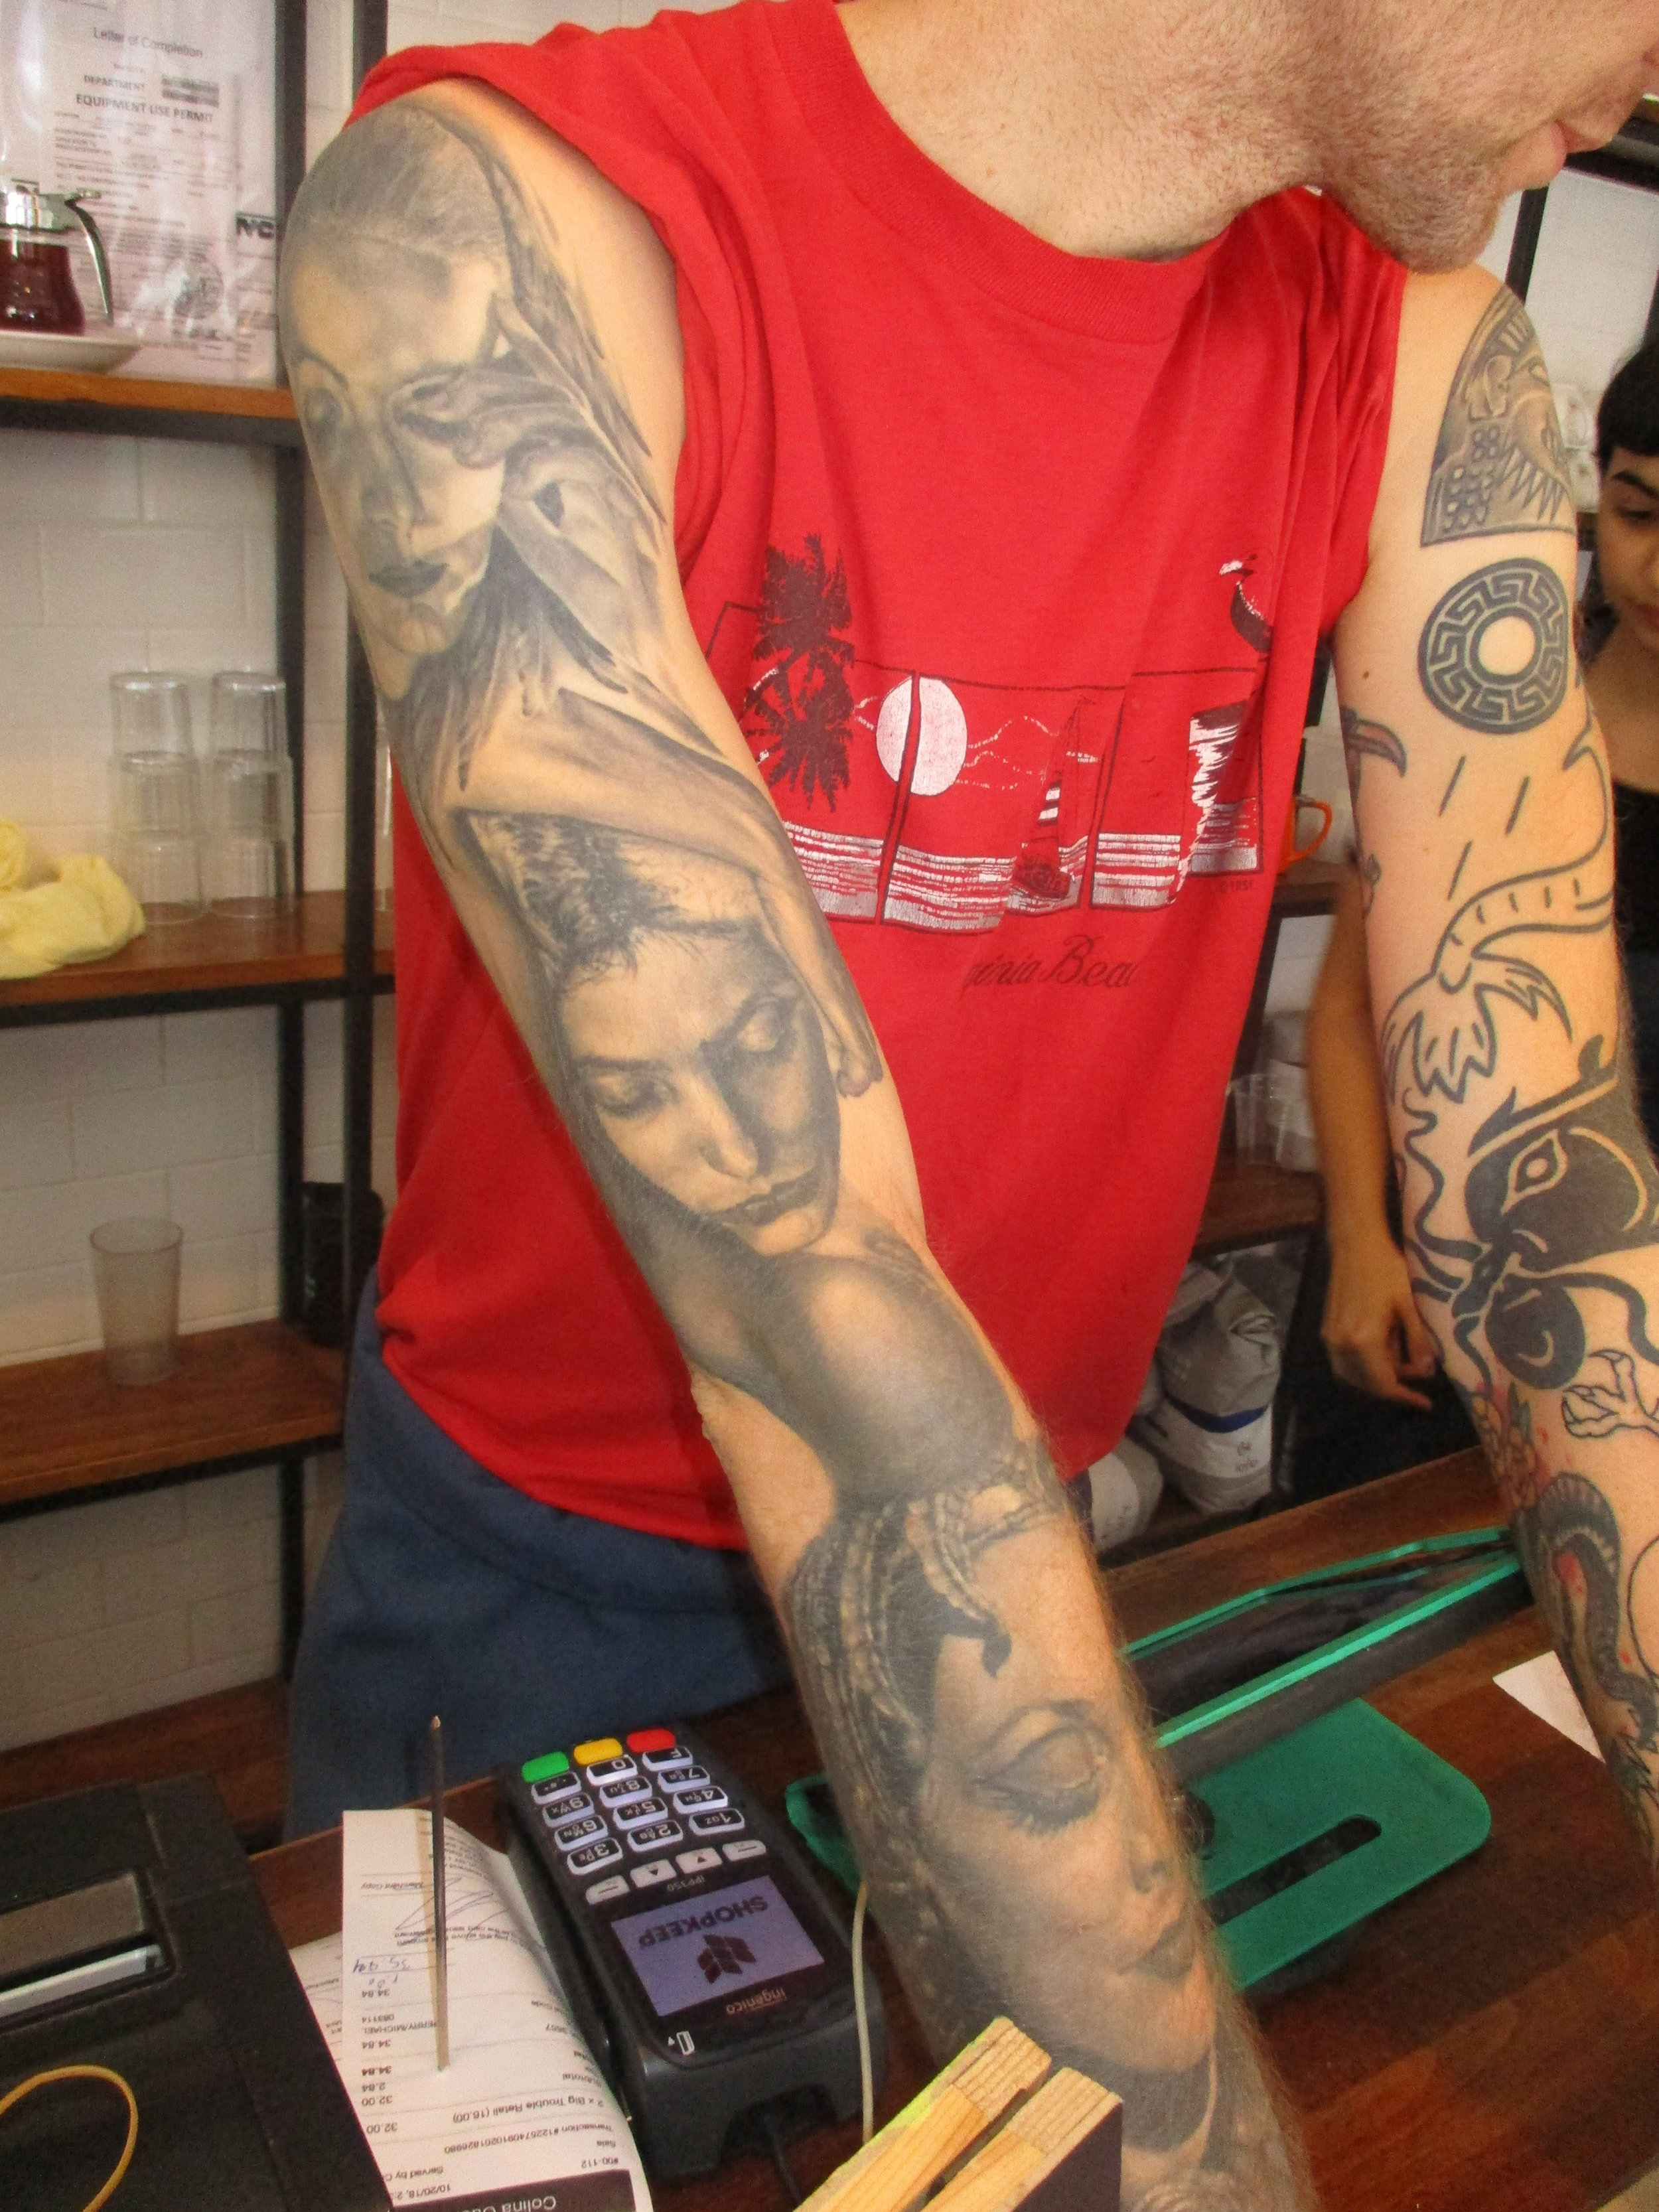 New worker at Colina Cuervo right arm pictures of beautiful women. Some representing past relationships.